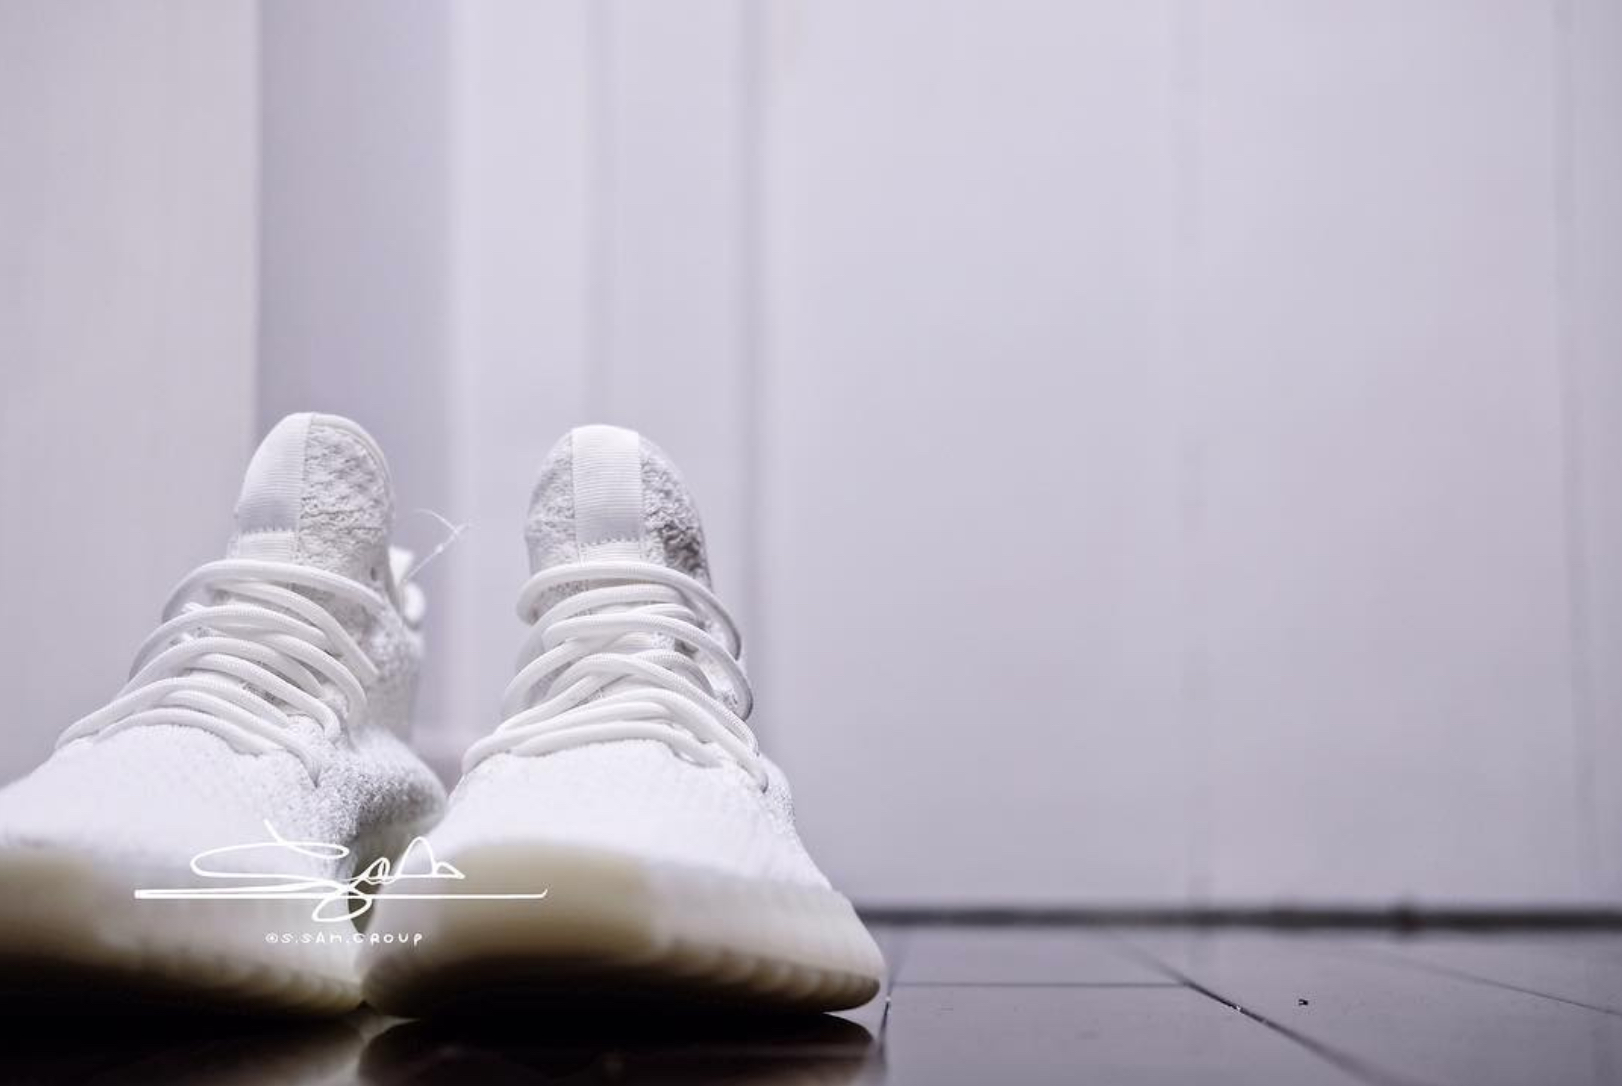 f4d9e780a89a4 adidas yeezy boost 650 white 7 - WearTesters